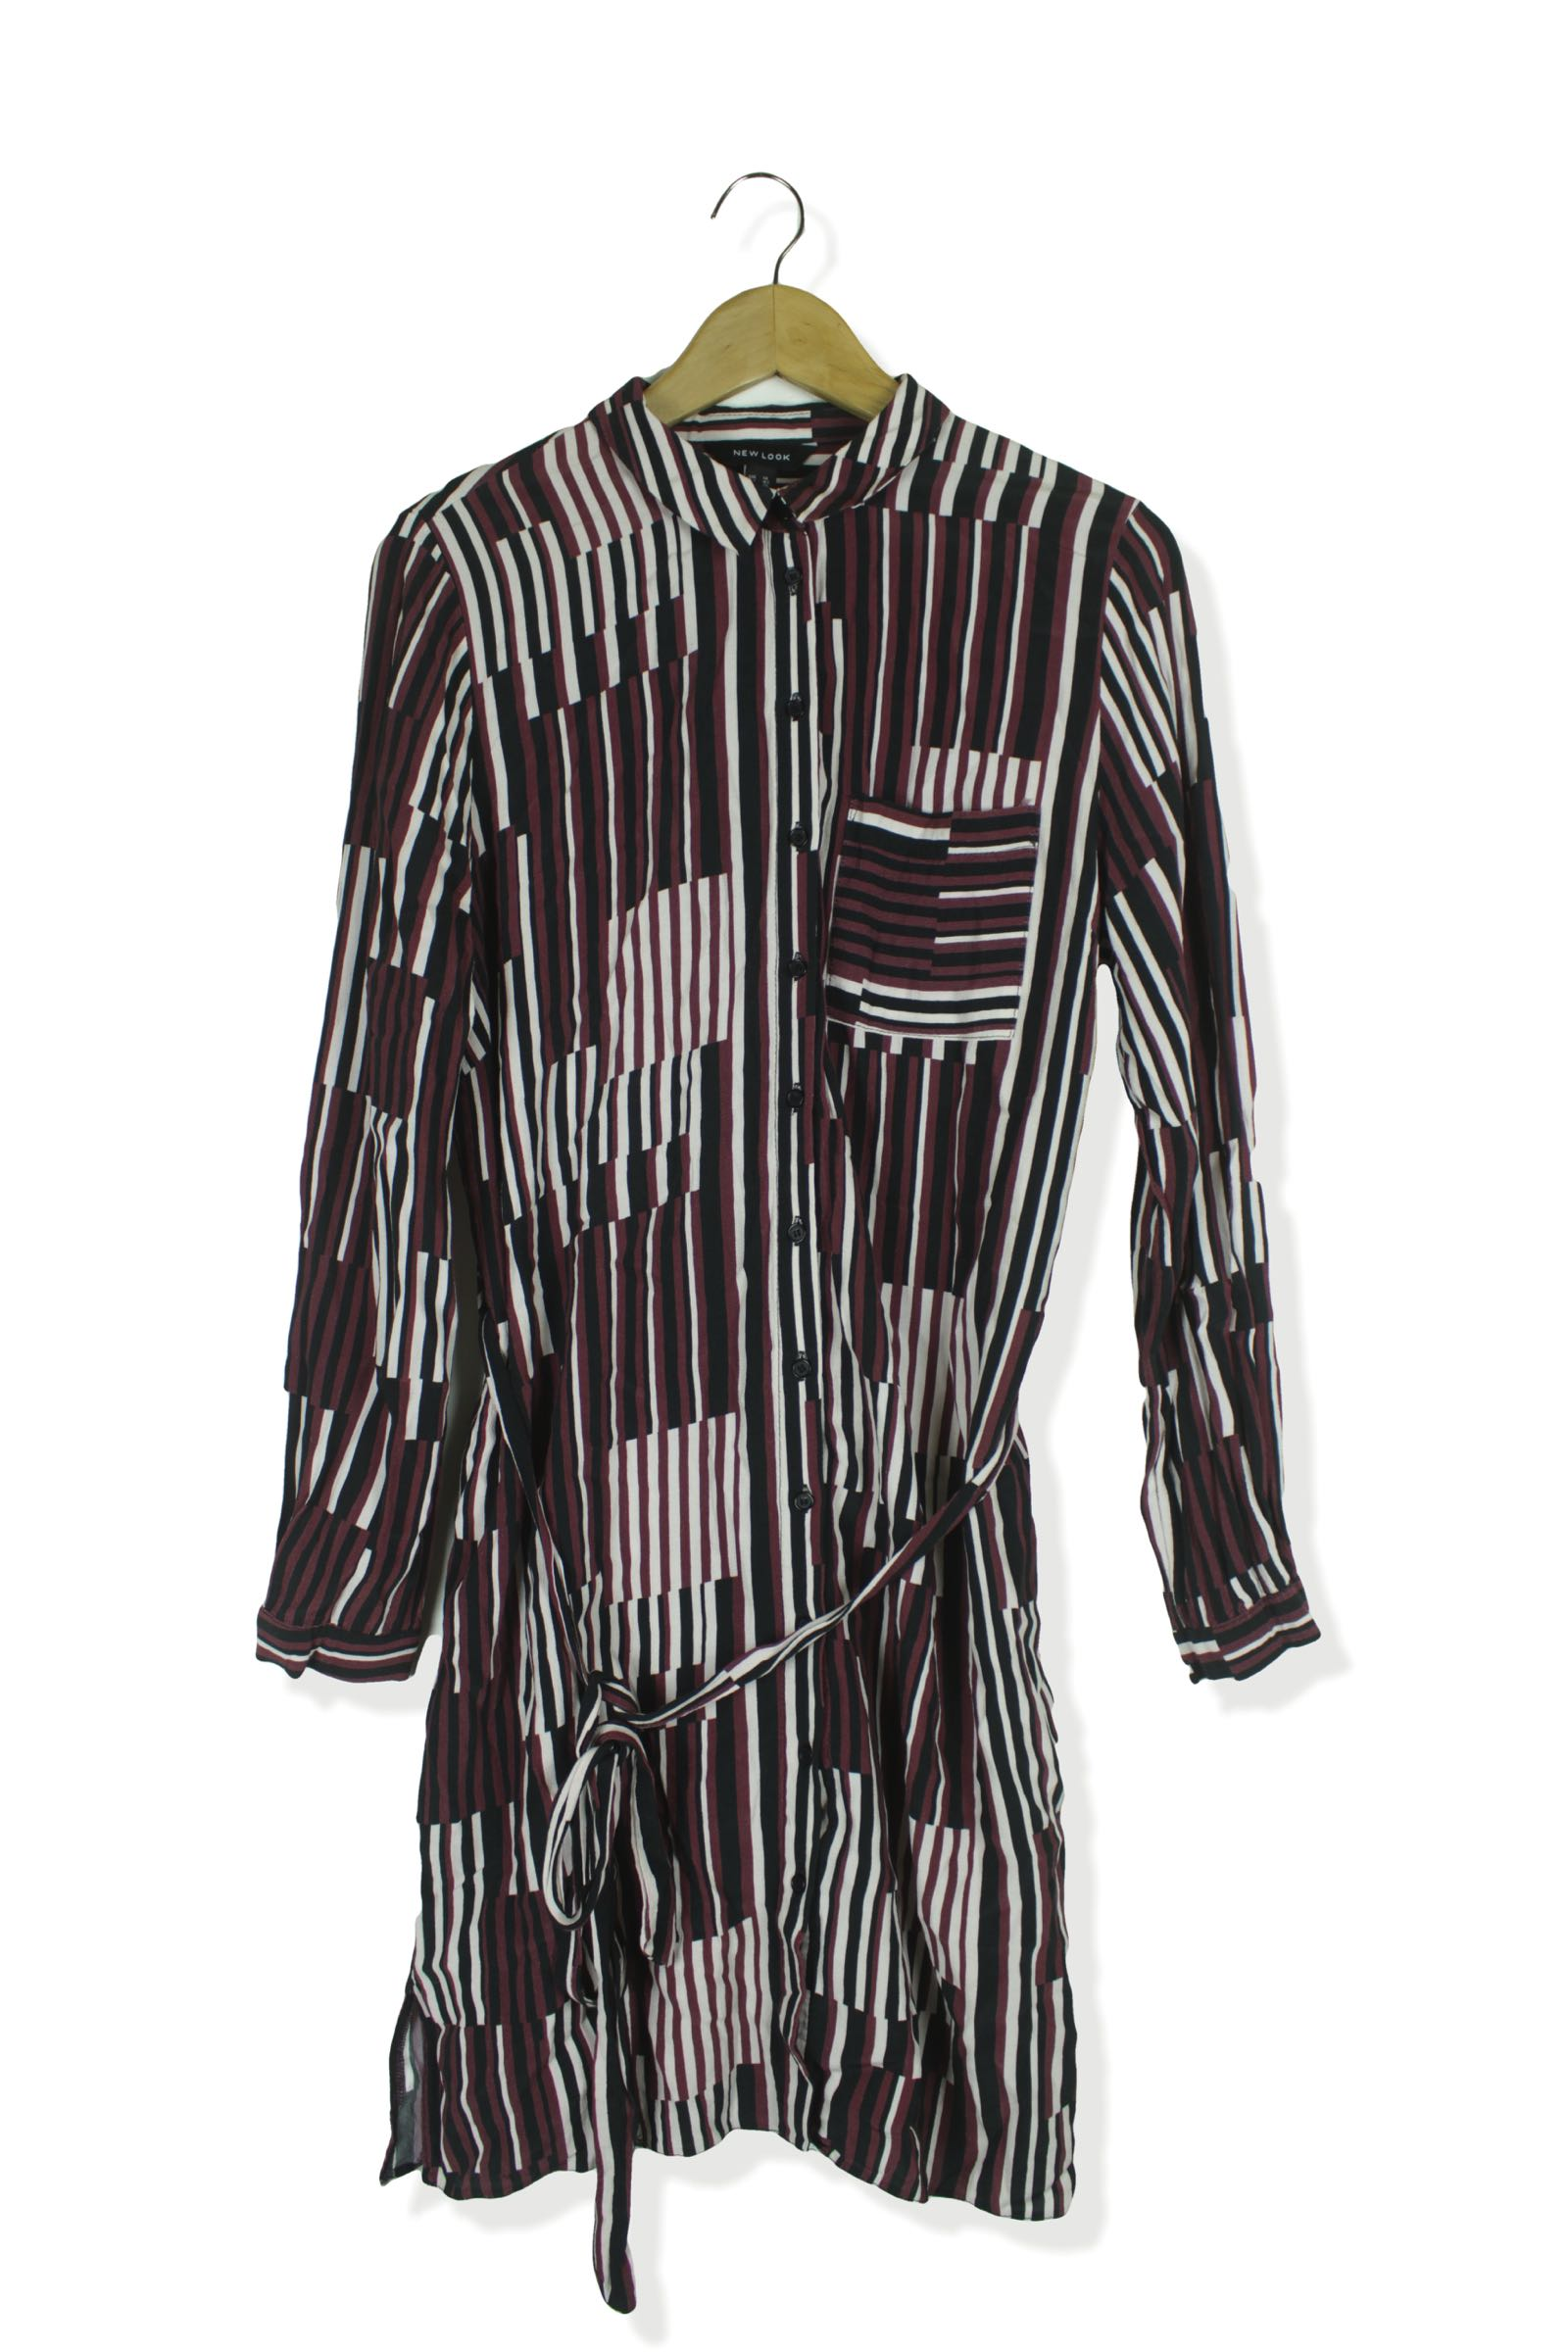 40b117be400ca2 HomeWomenNew Look pink & black abstract pattern shirt dress Size 14.  Previous. Second Hand Clothes